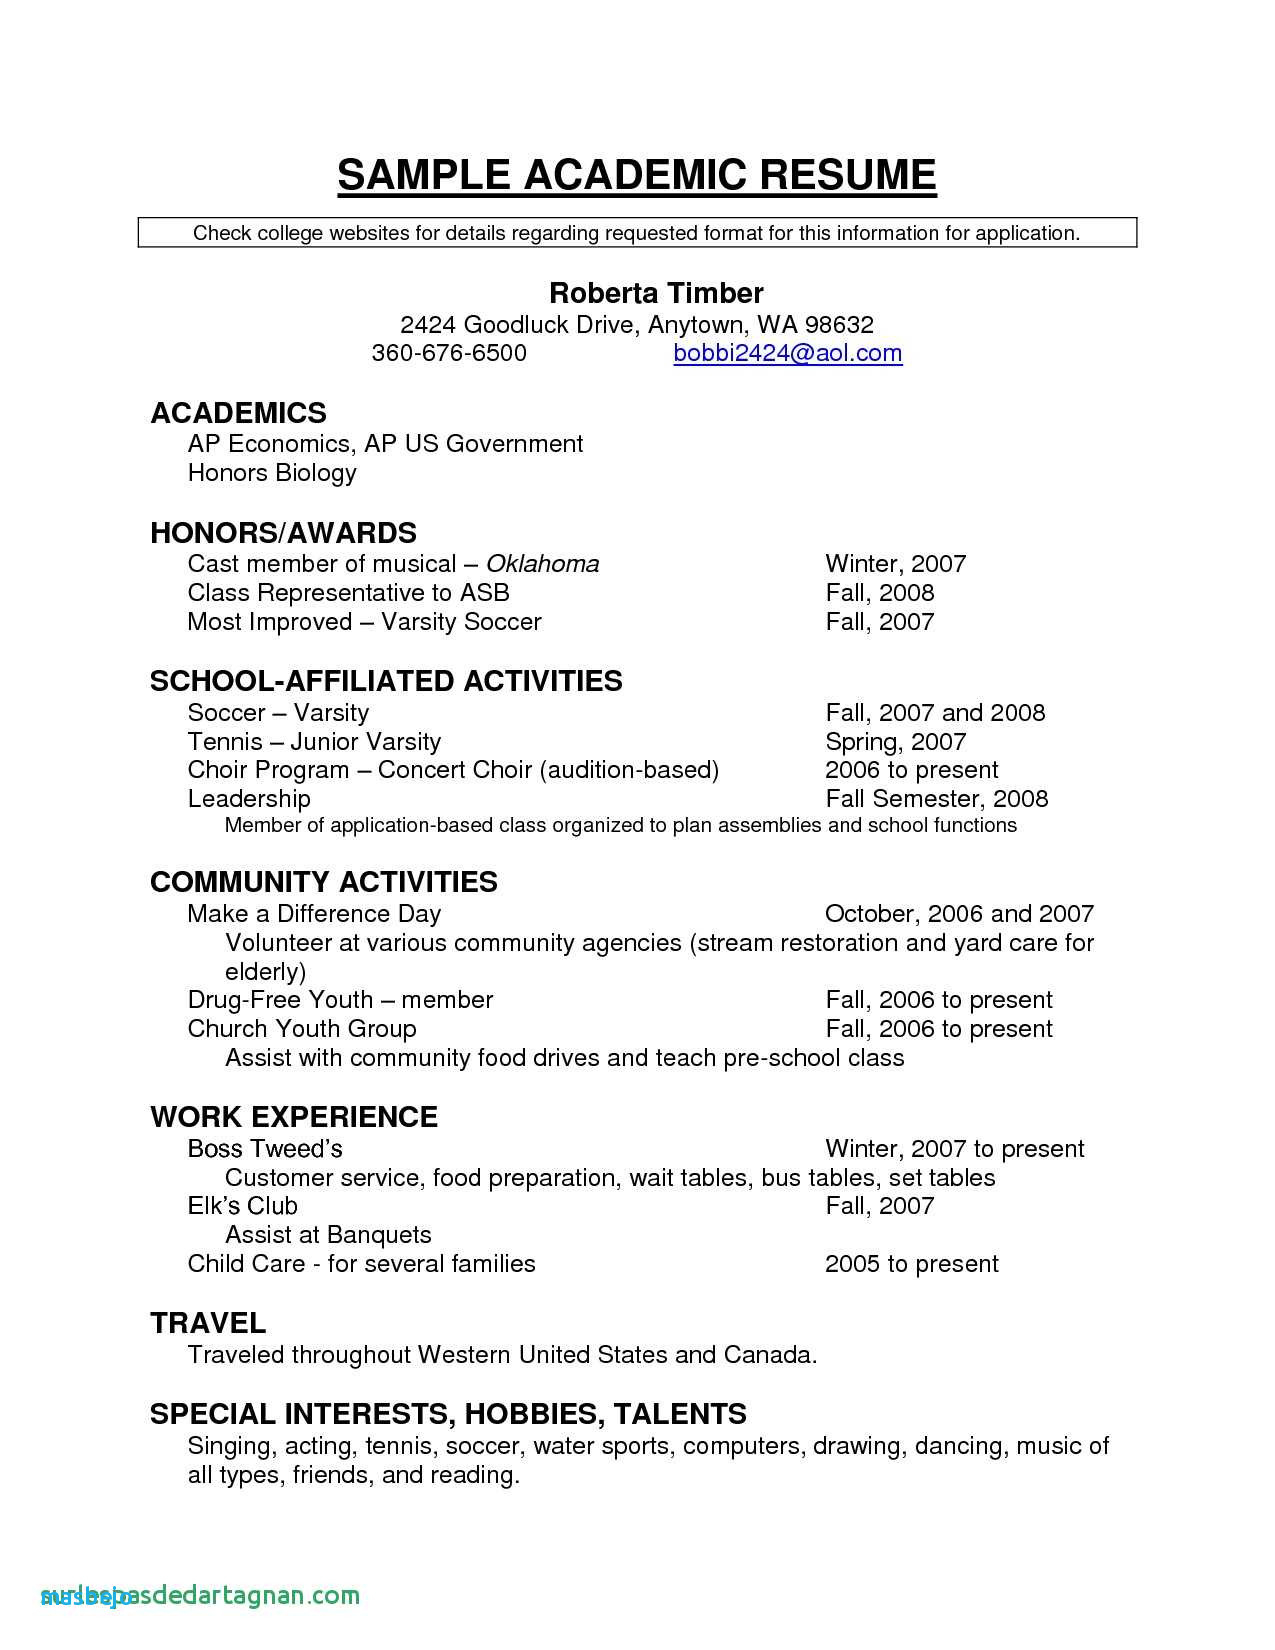 Teenage Resume Template - Puter Resume Examples Unique Resume for Highschool Students